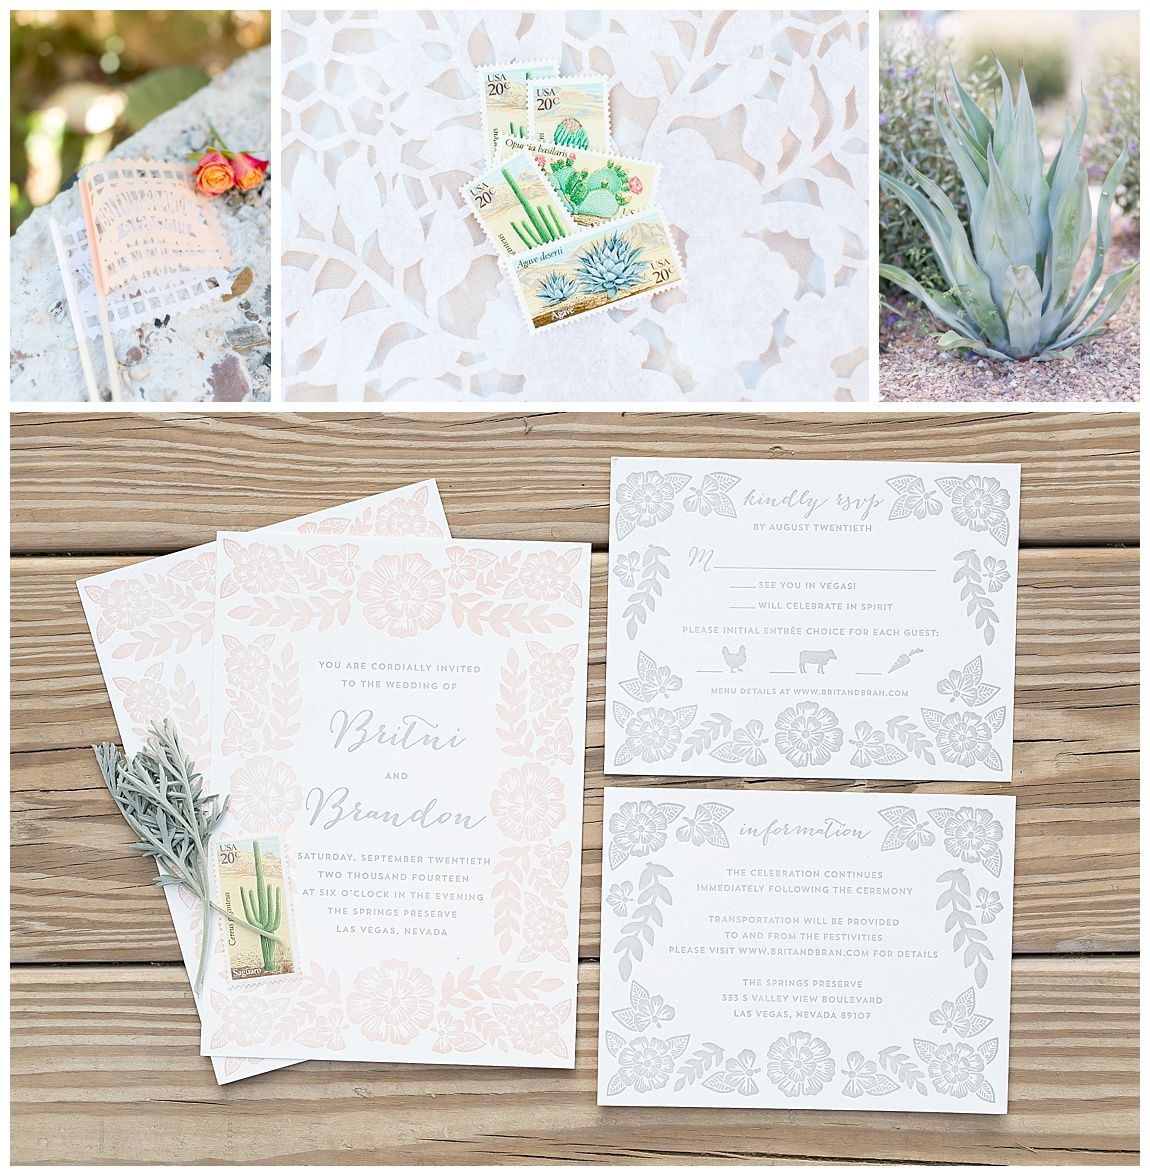 Las Vegas wedding planner, desert themed stamps, banderole, papel ...